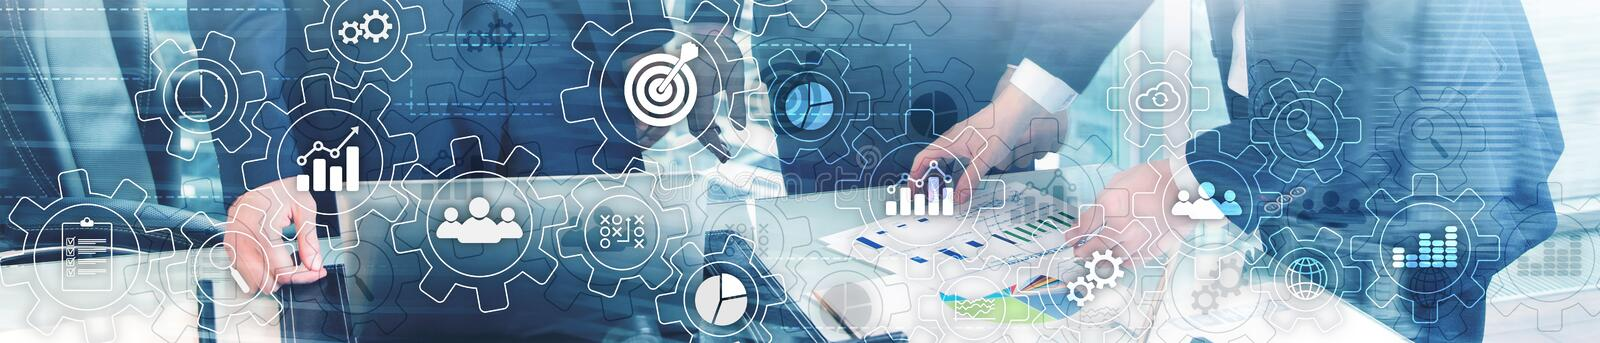 Business process abstract diagram with gears and icons. Workflow and automation technology concept. Website header. Banner stock image